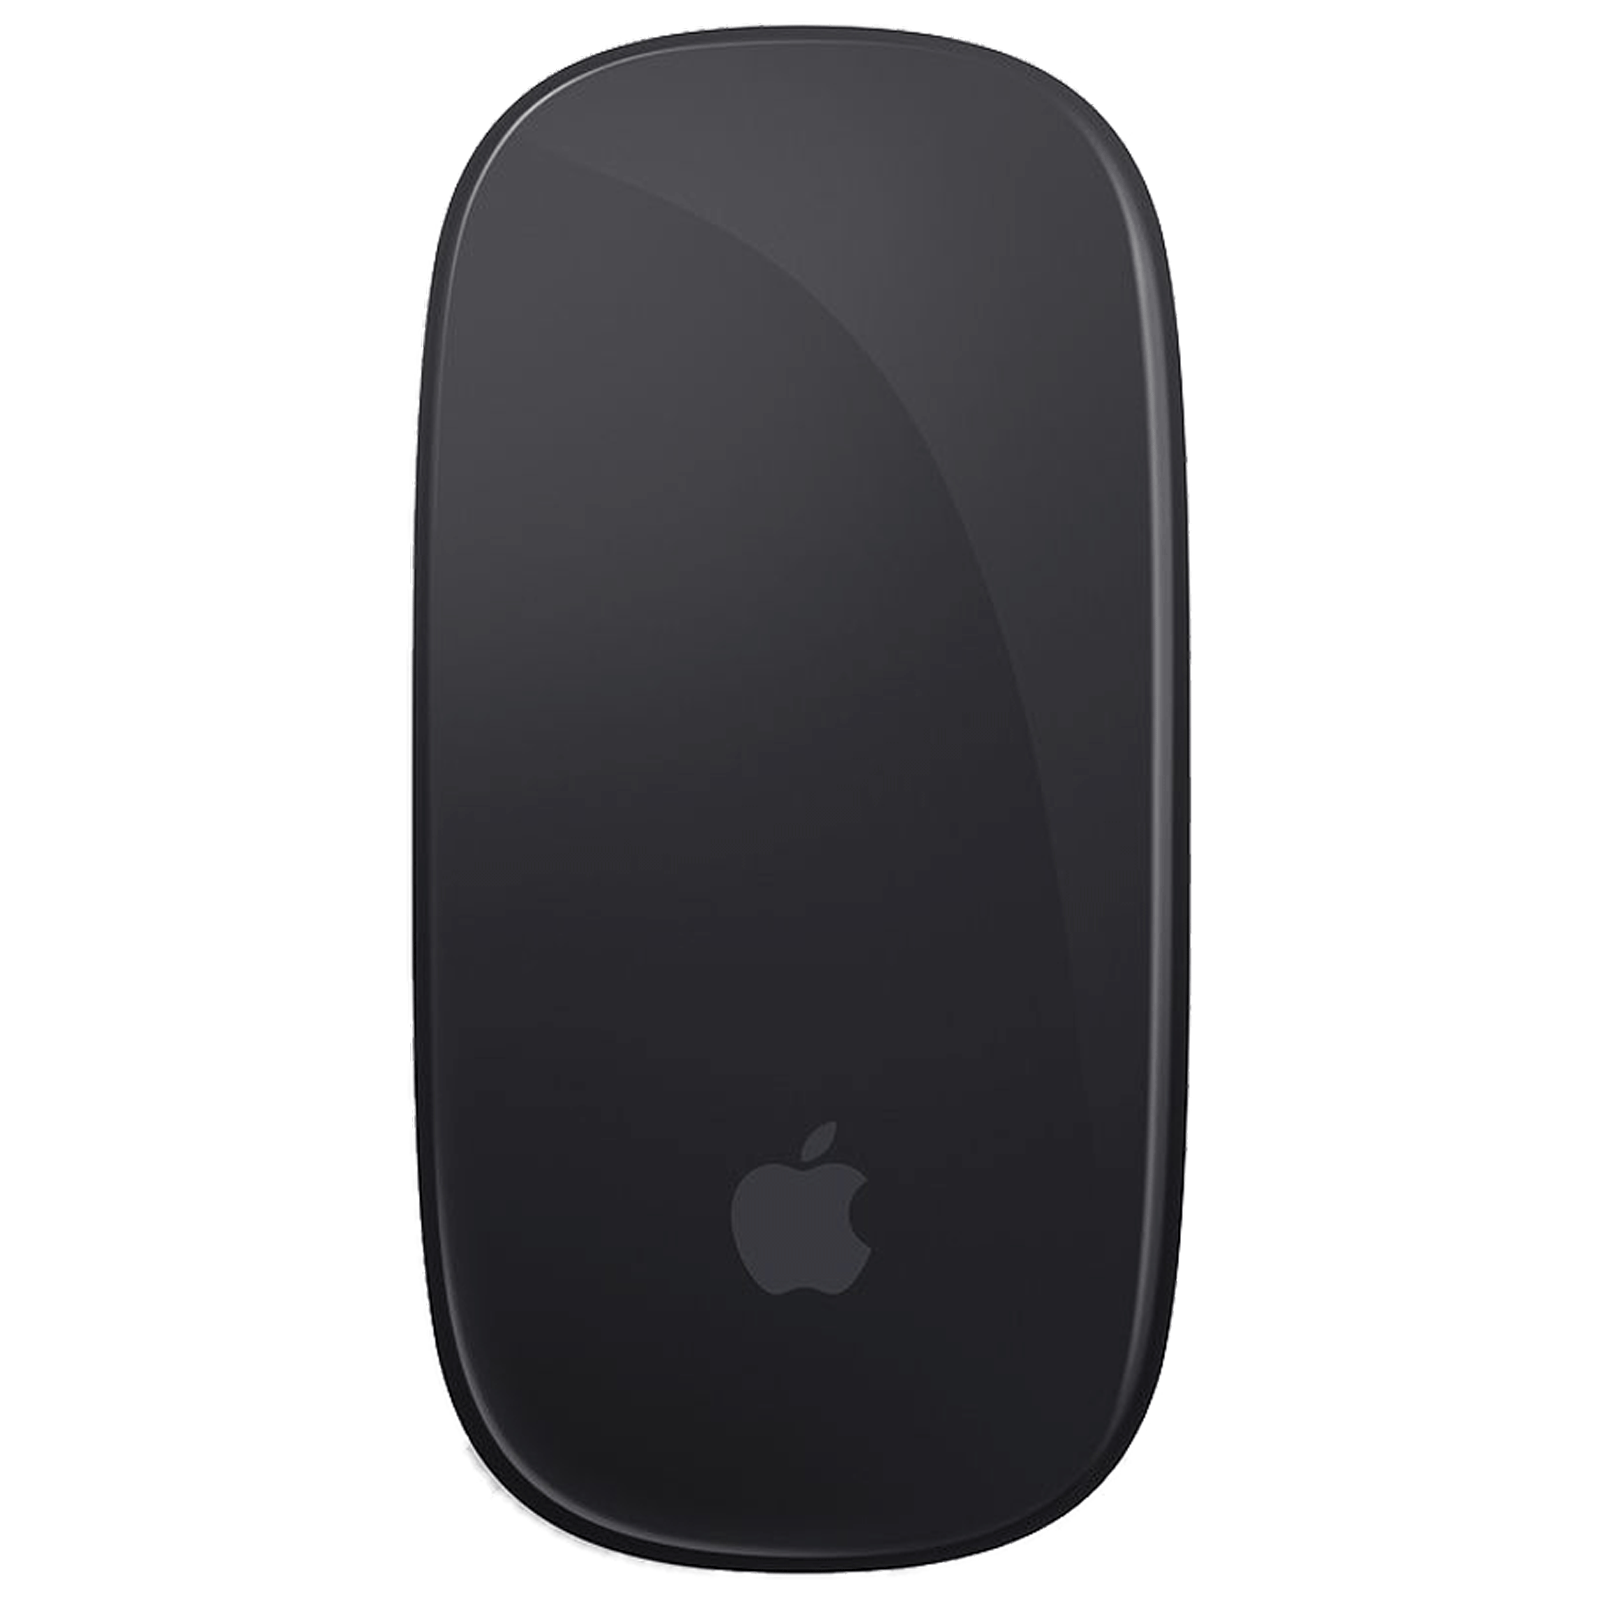 Apple Magic 2 Wireless & Bluetooth Laser Mouse (Multi Touch, MRME2ZM/A, Space Grey)_1